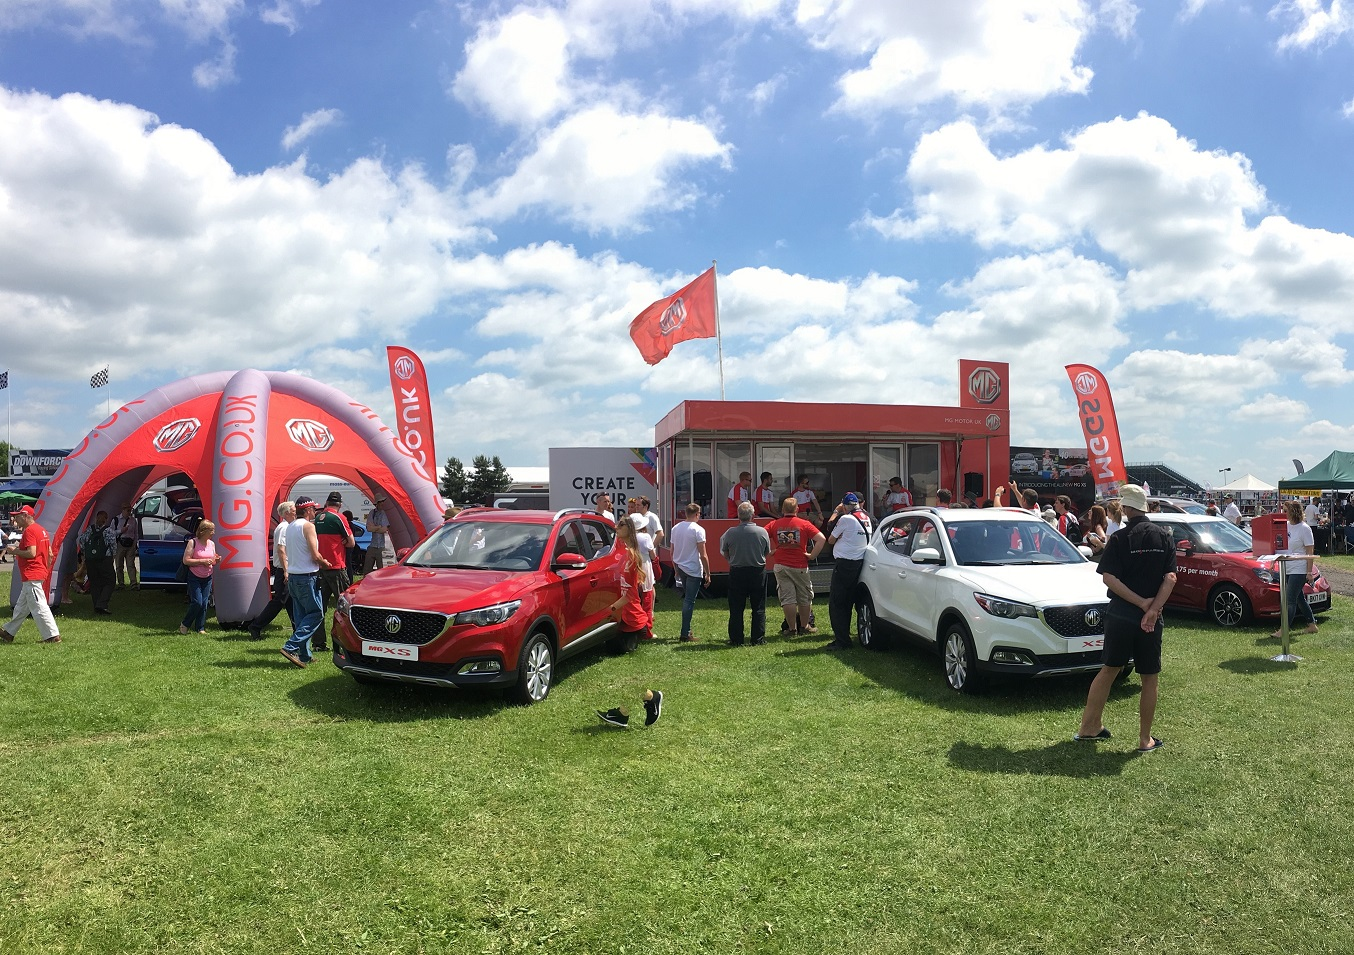 MG Live Event Showcases 97 years of MG history